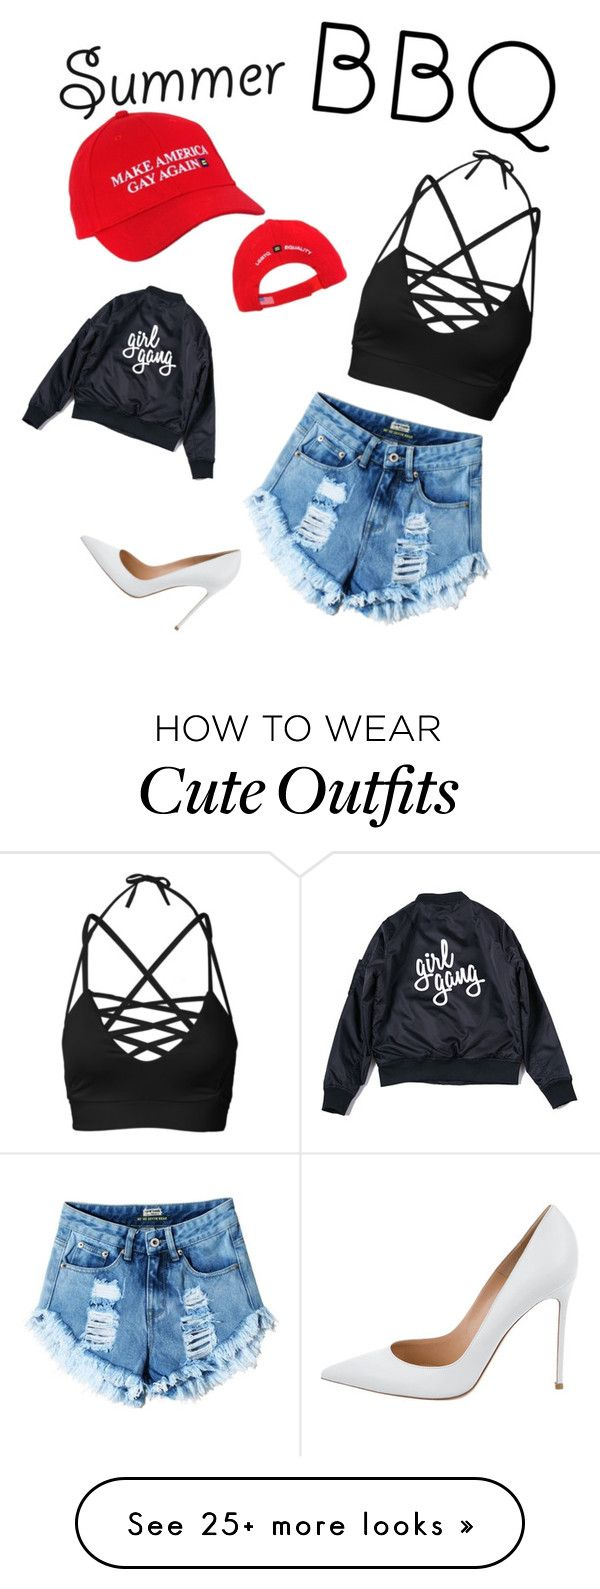 """Cute summer BBQ outfit"" by lizzybizzy2o on Polyvore featuring Gianvito Rossi and summerbbq"